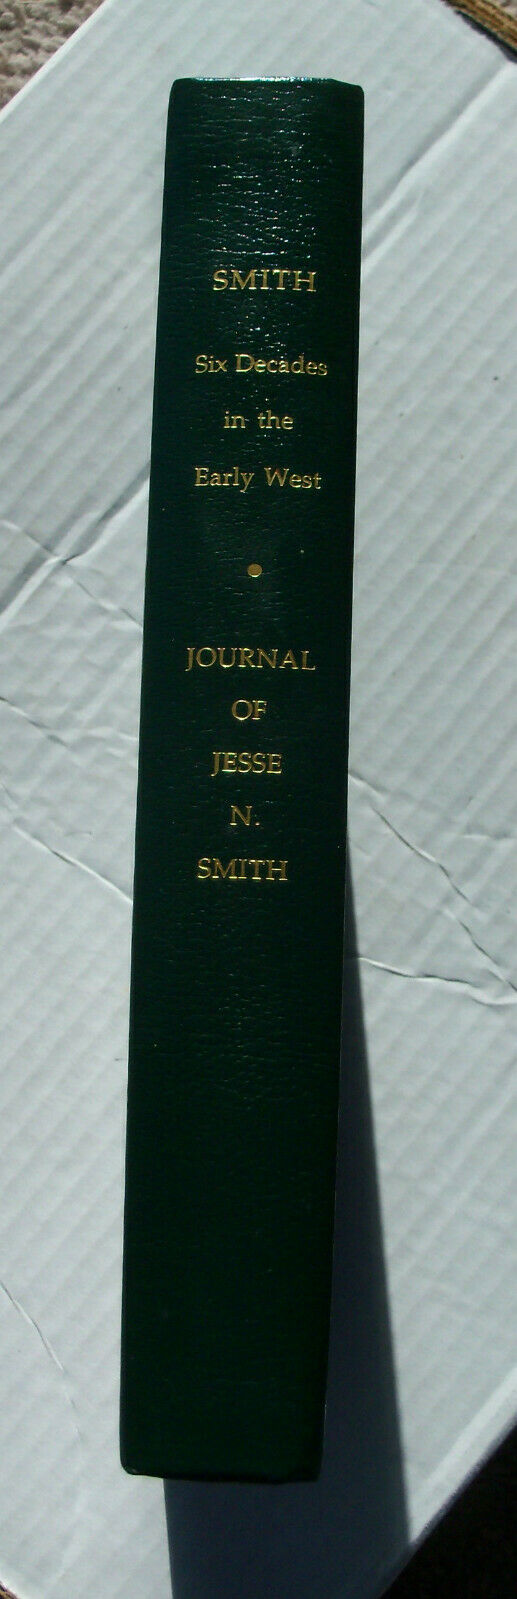 The Journal Of Jesse Nathaniel Smith Mormon Pioneer Six Decades In Early West - $45.00